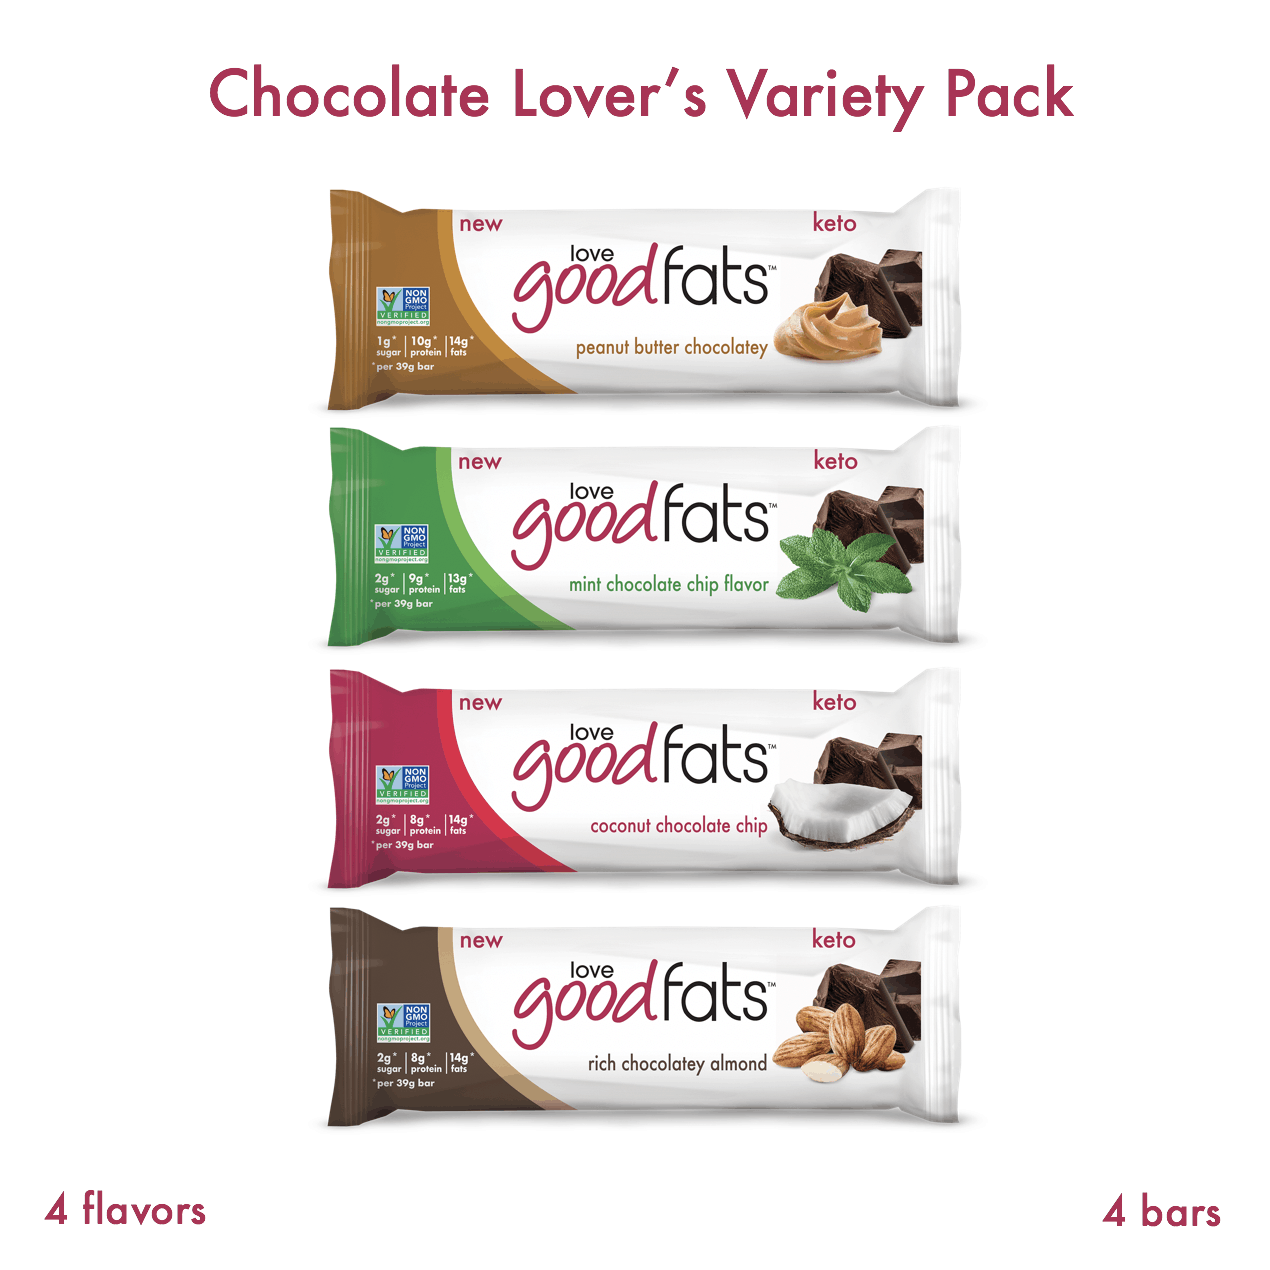 Chocolate Lover's Trial Pack (core 4 bars)